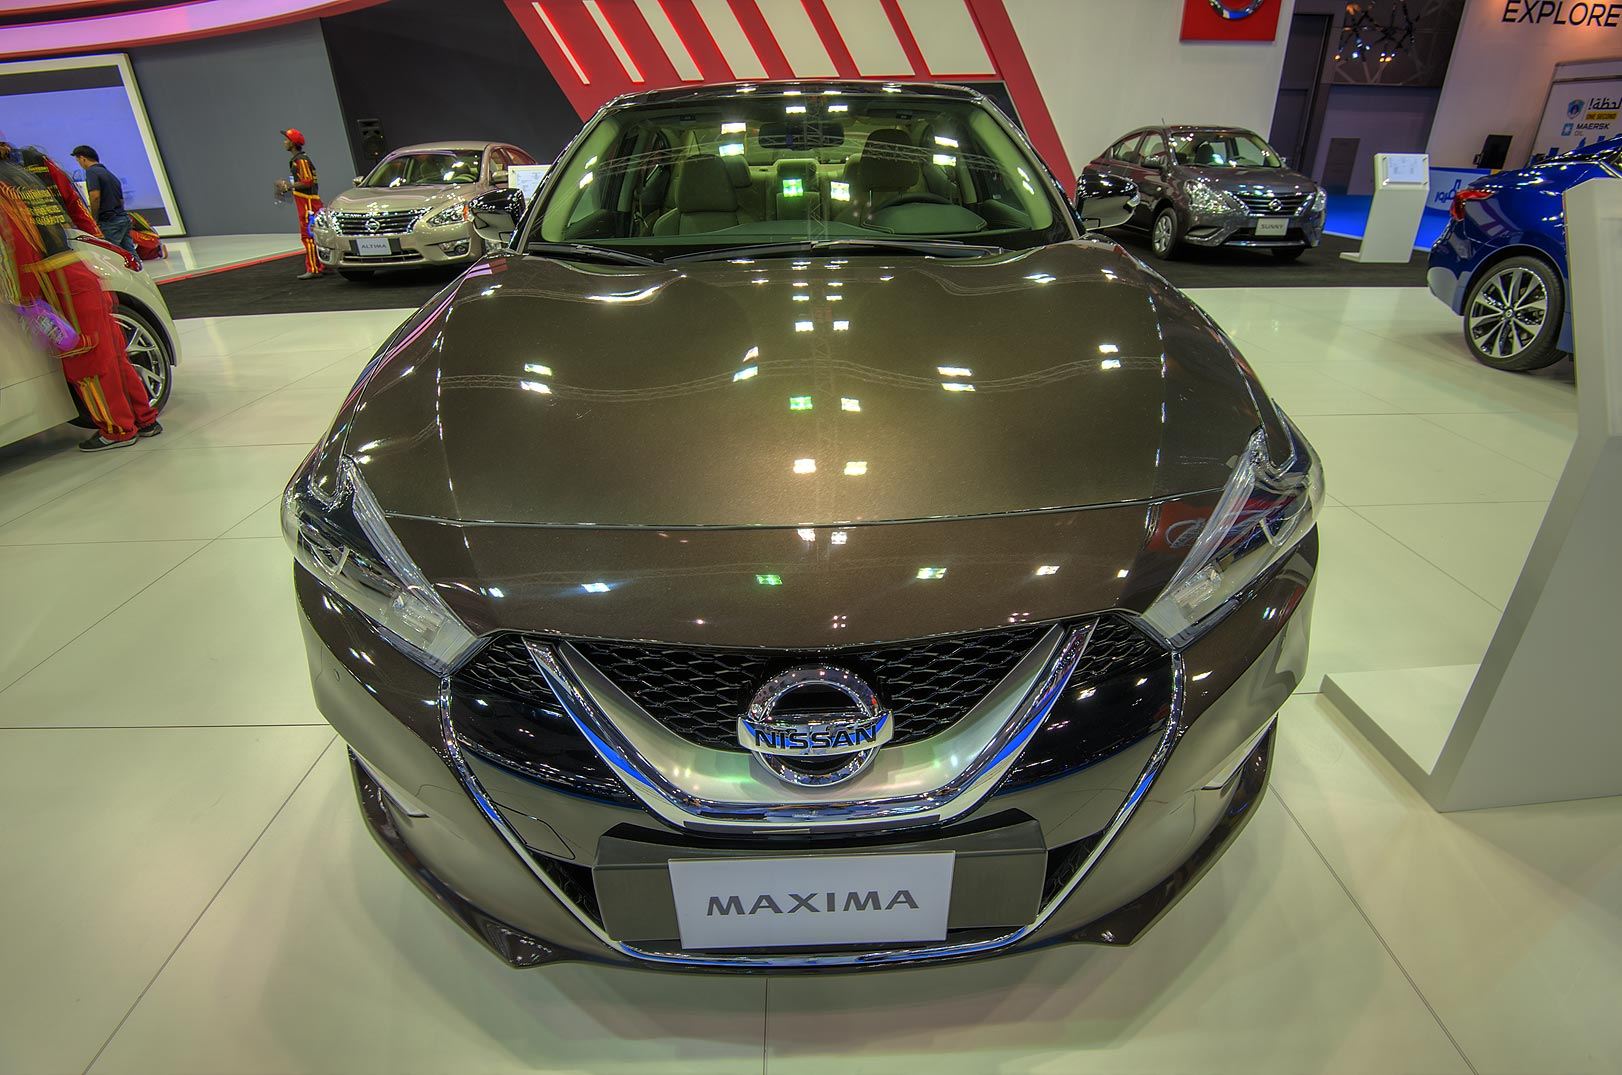 Nissan Maxima car at a motor show in Exhibition...near City Center mall. Doha, Qatar